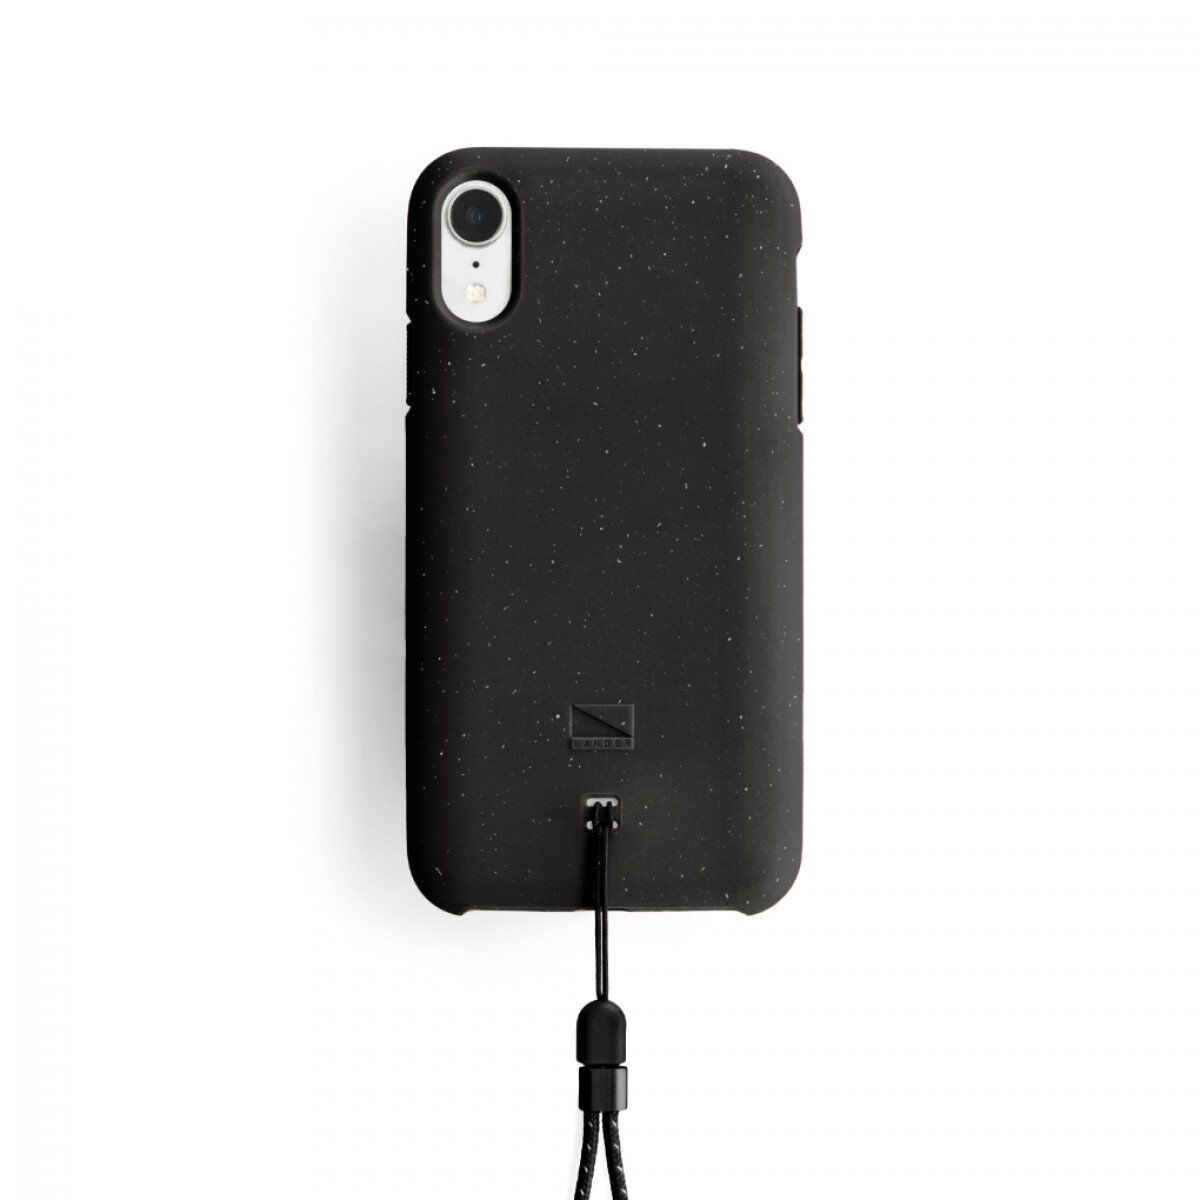 Now more than ever BW iPhone 11 case